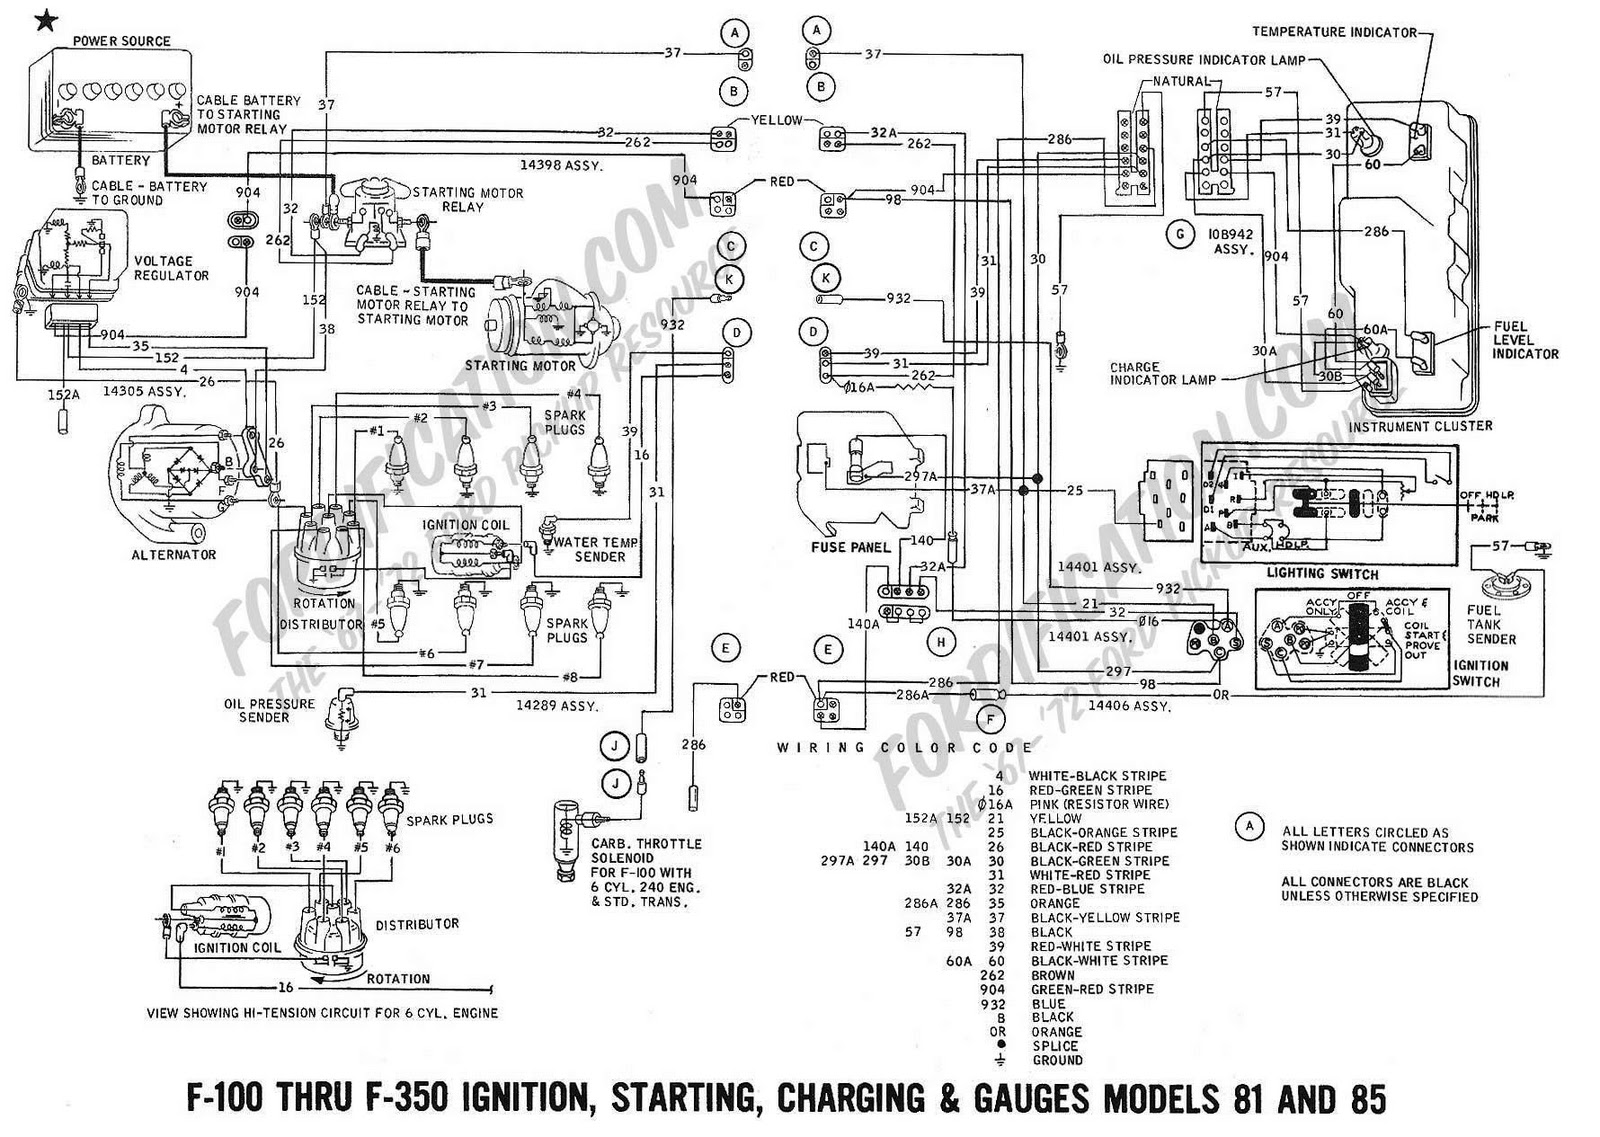 [DIAGRAM_38EU]  E579 16 Ft Sunline Camper Wiring Diagram | Wiring Resources | Ford L9000 Wiring Diagram Brakelights |  | Wiring Resources